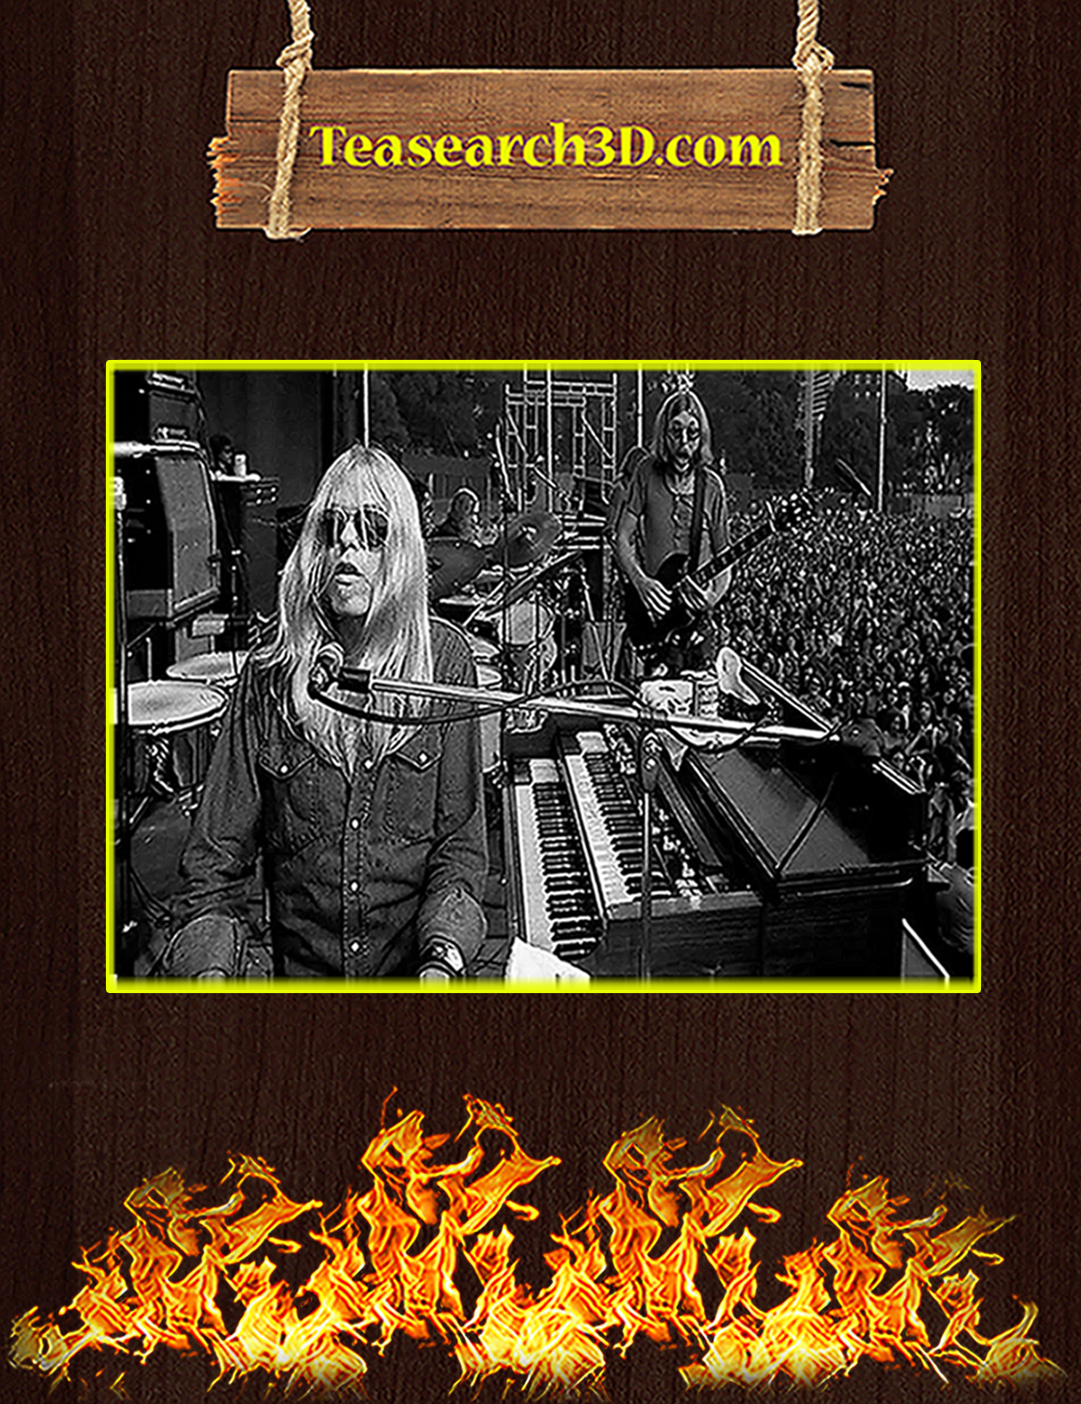 Gregg and Duane Allman Brothers poster A2